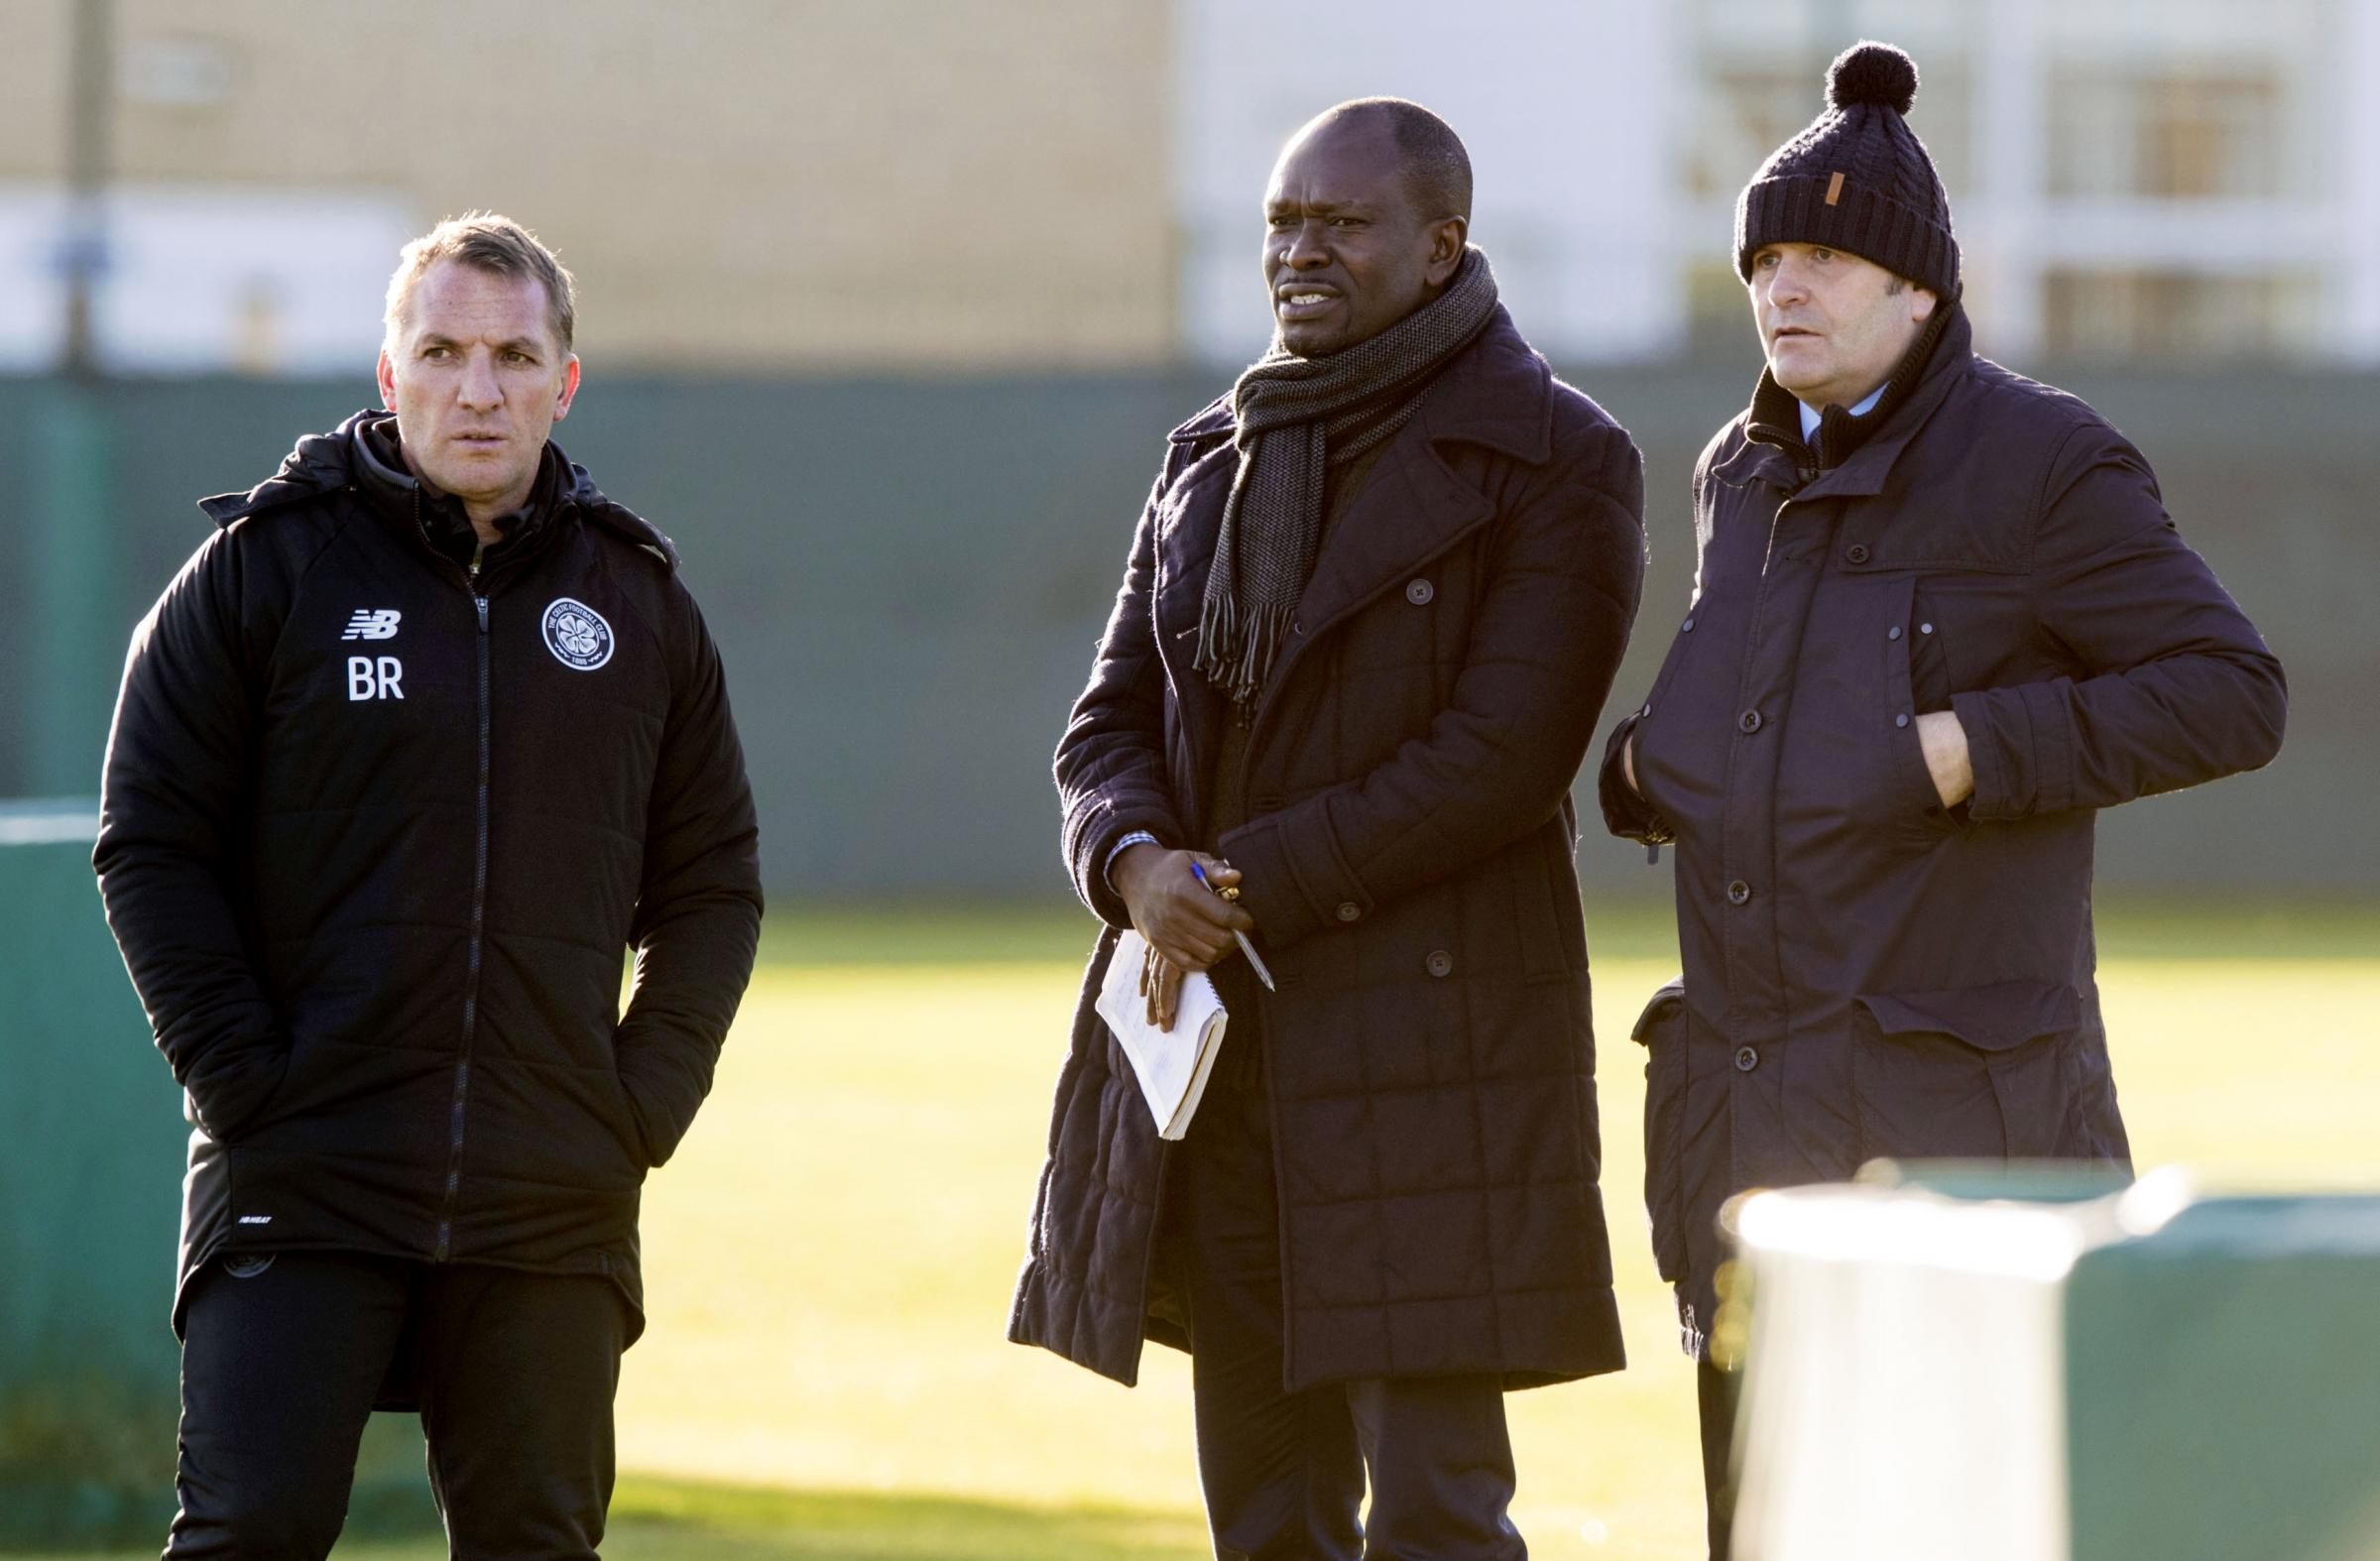 Celtic manager Brendan Rodgers, left, watches training with Allan Preston, right.